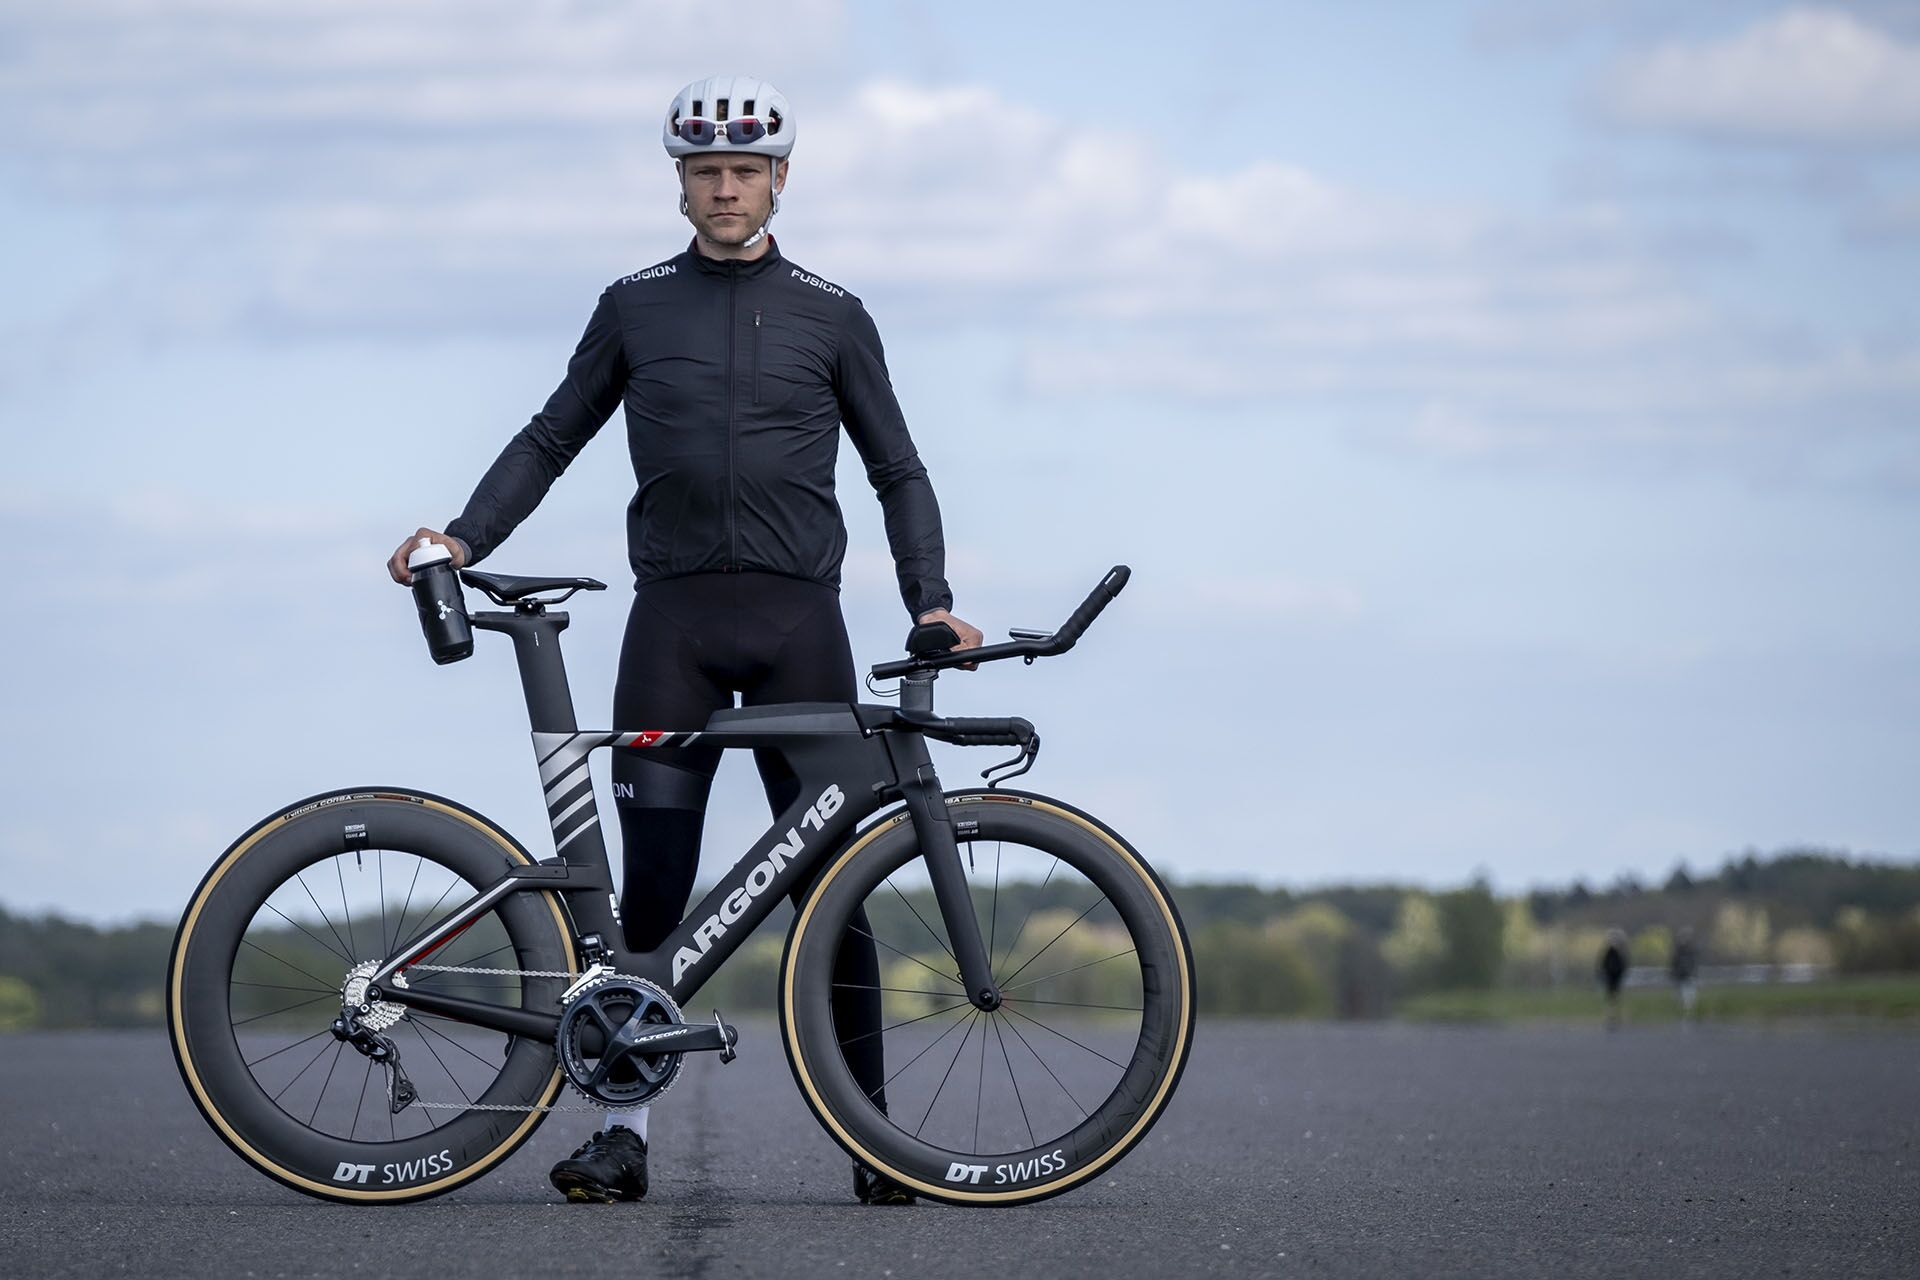 Morten Falk on our E-119 Tri+ race edt.